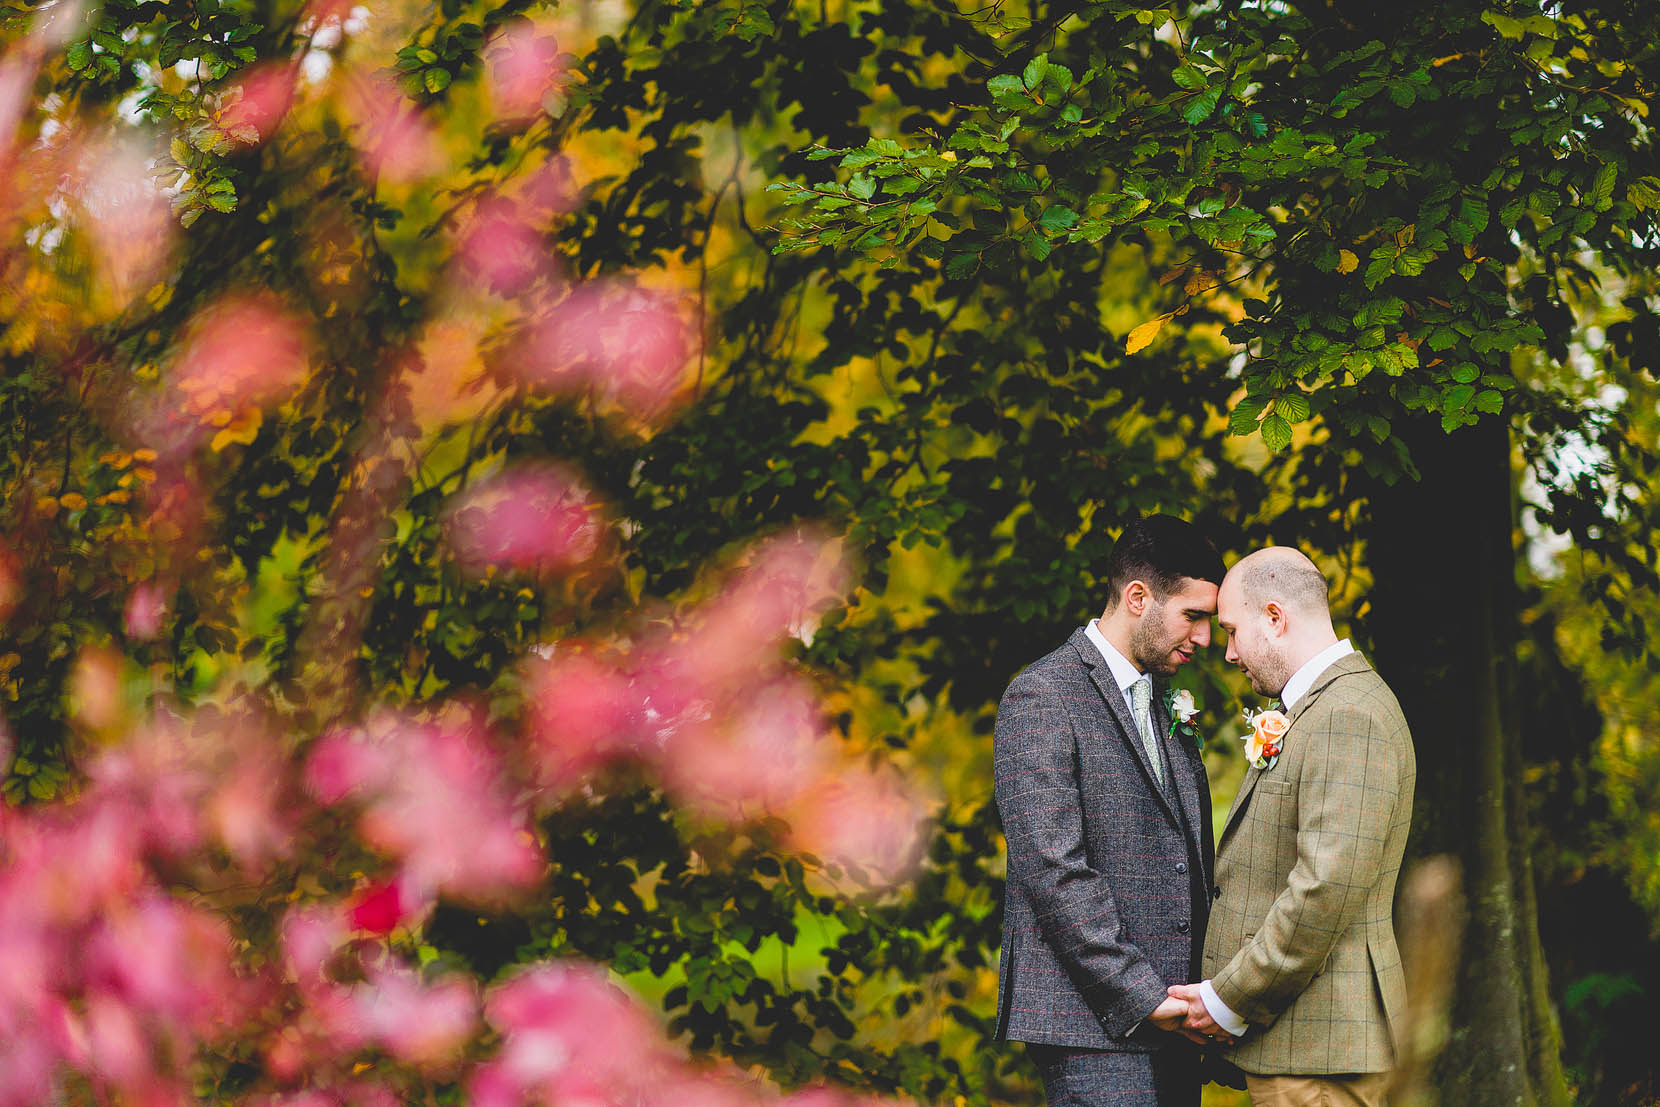 Sizzling hot winter wedding at elms barn. Jame sand Nabil cuddle in the colour